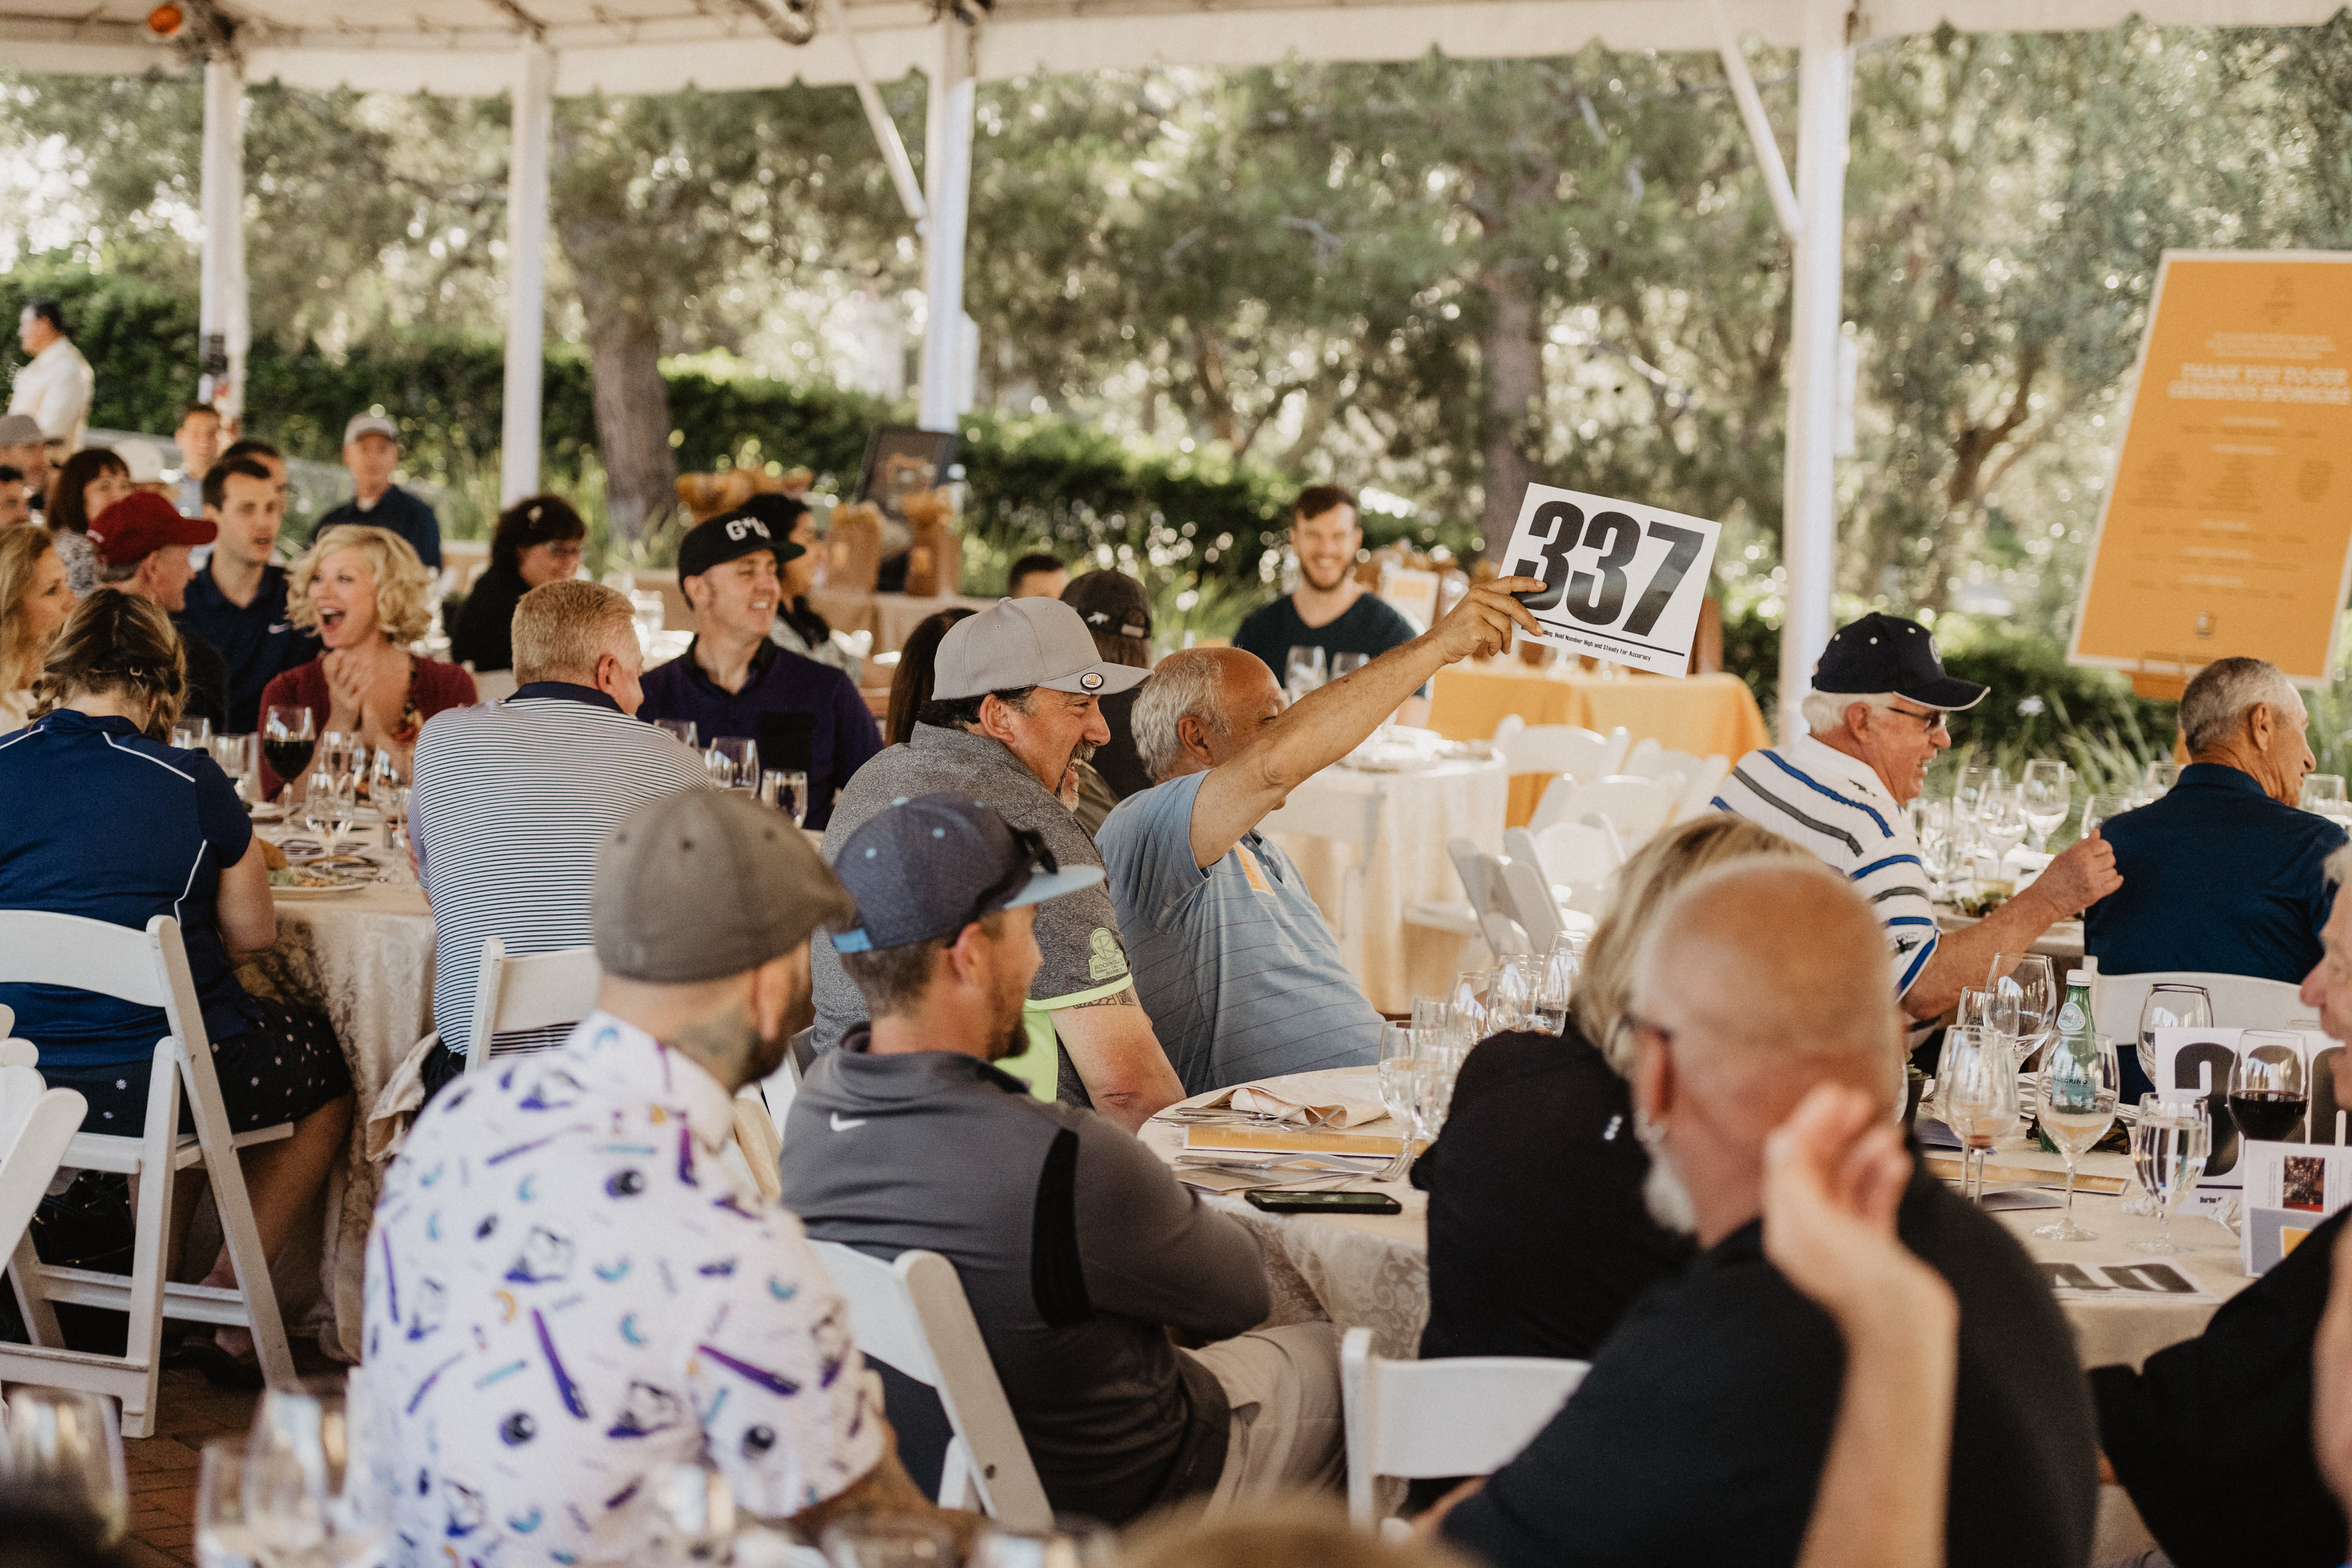 Group of people at Goodwill of Orange County Golf Classic sitting at tables and holding up bid numbers.